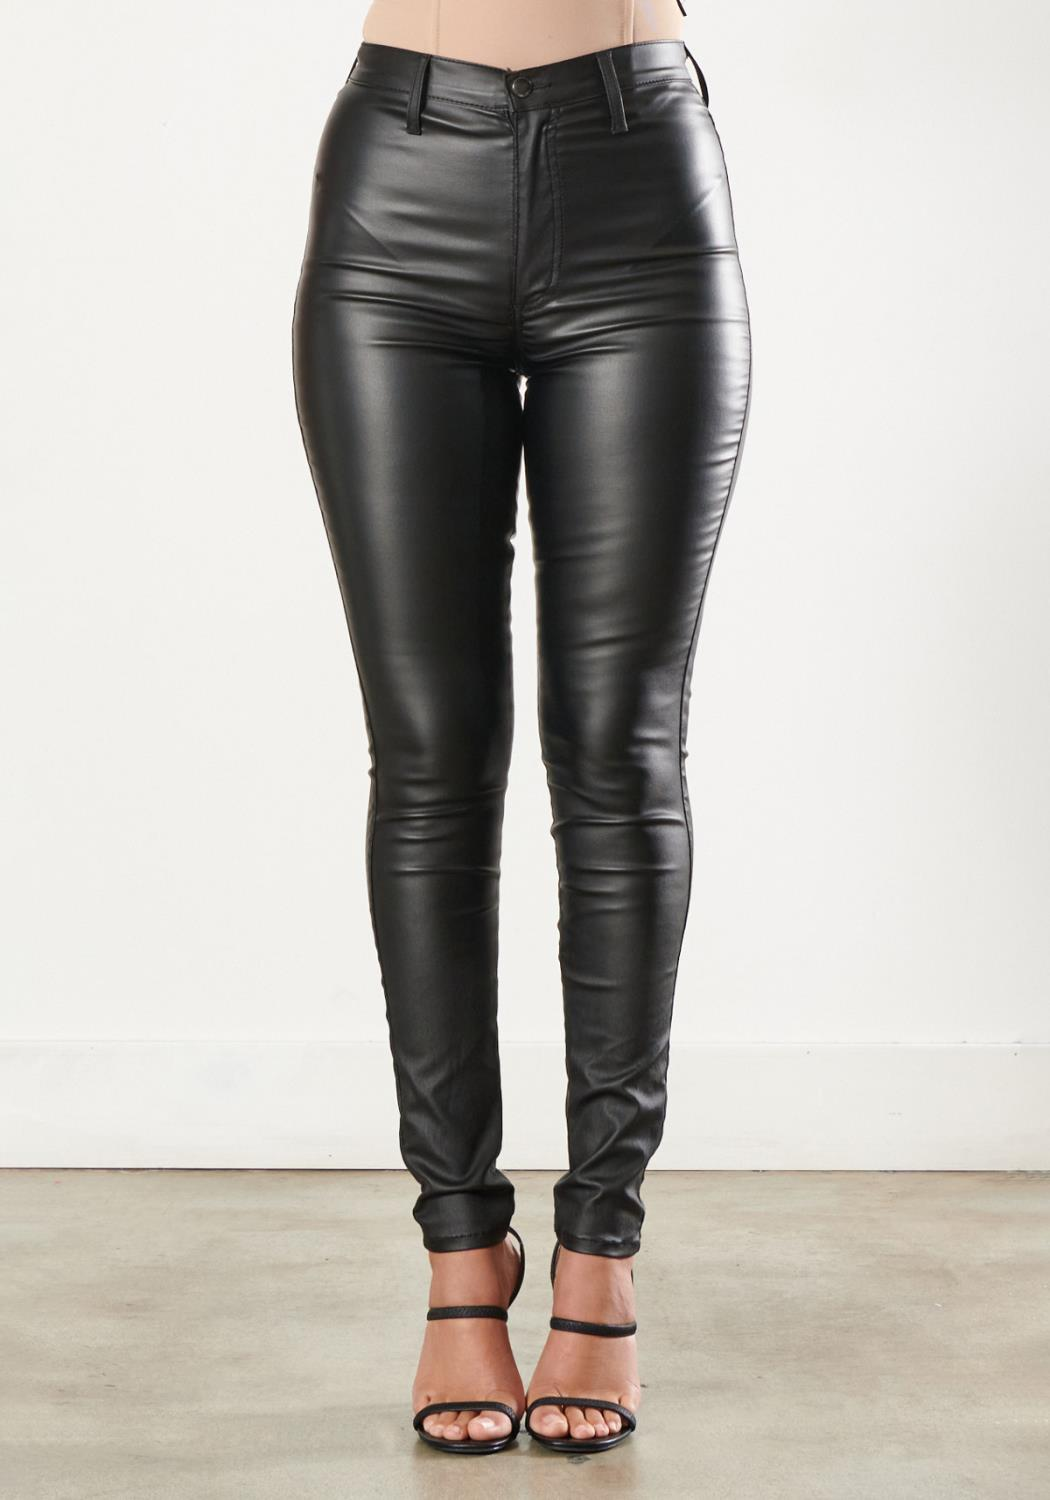 Super High-Rise Coated Black Jeans